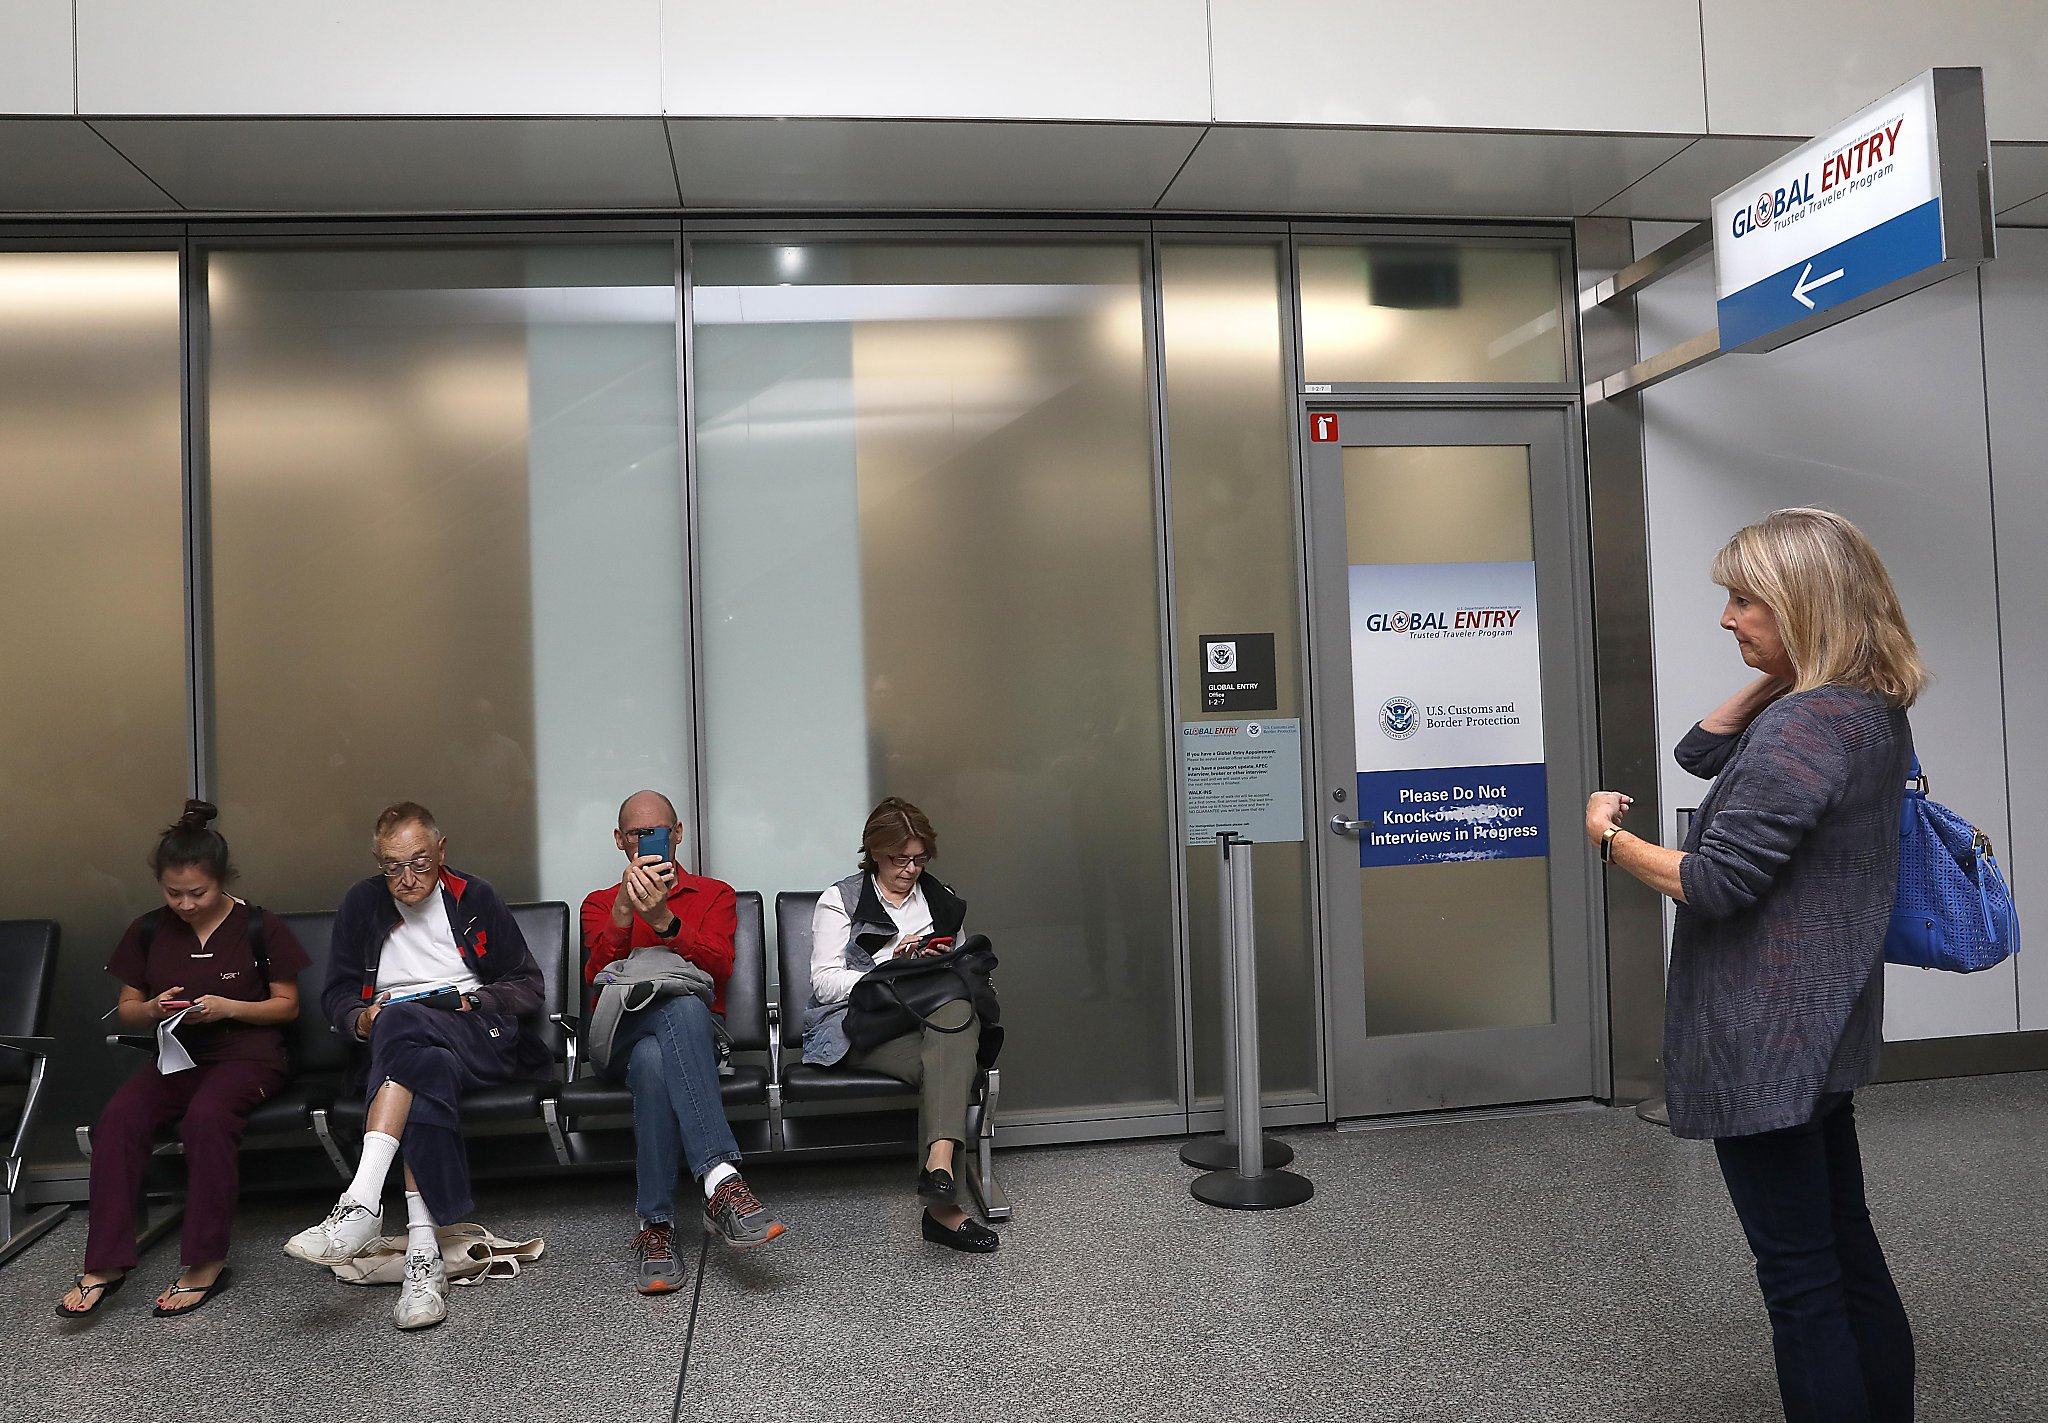 You can book a Global Entry interview at SFO through June 30